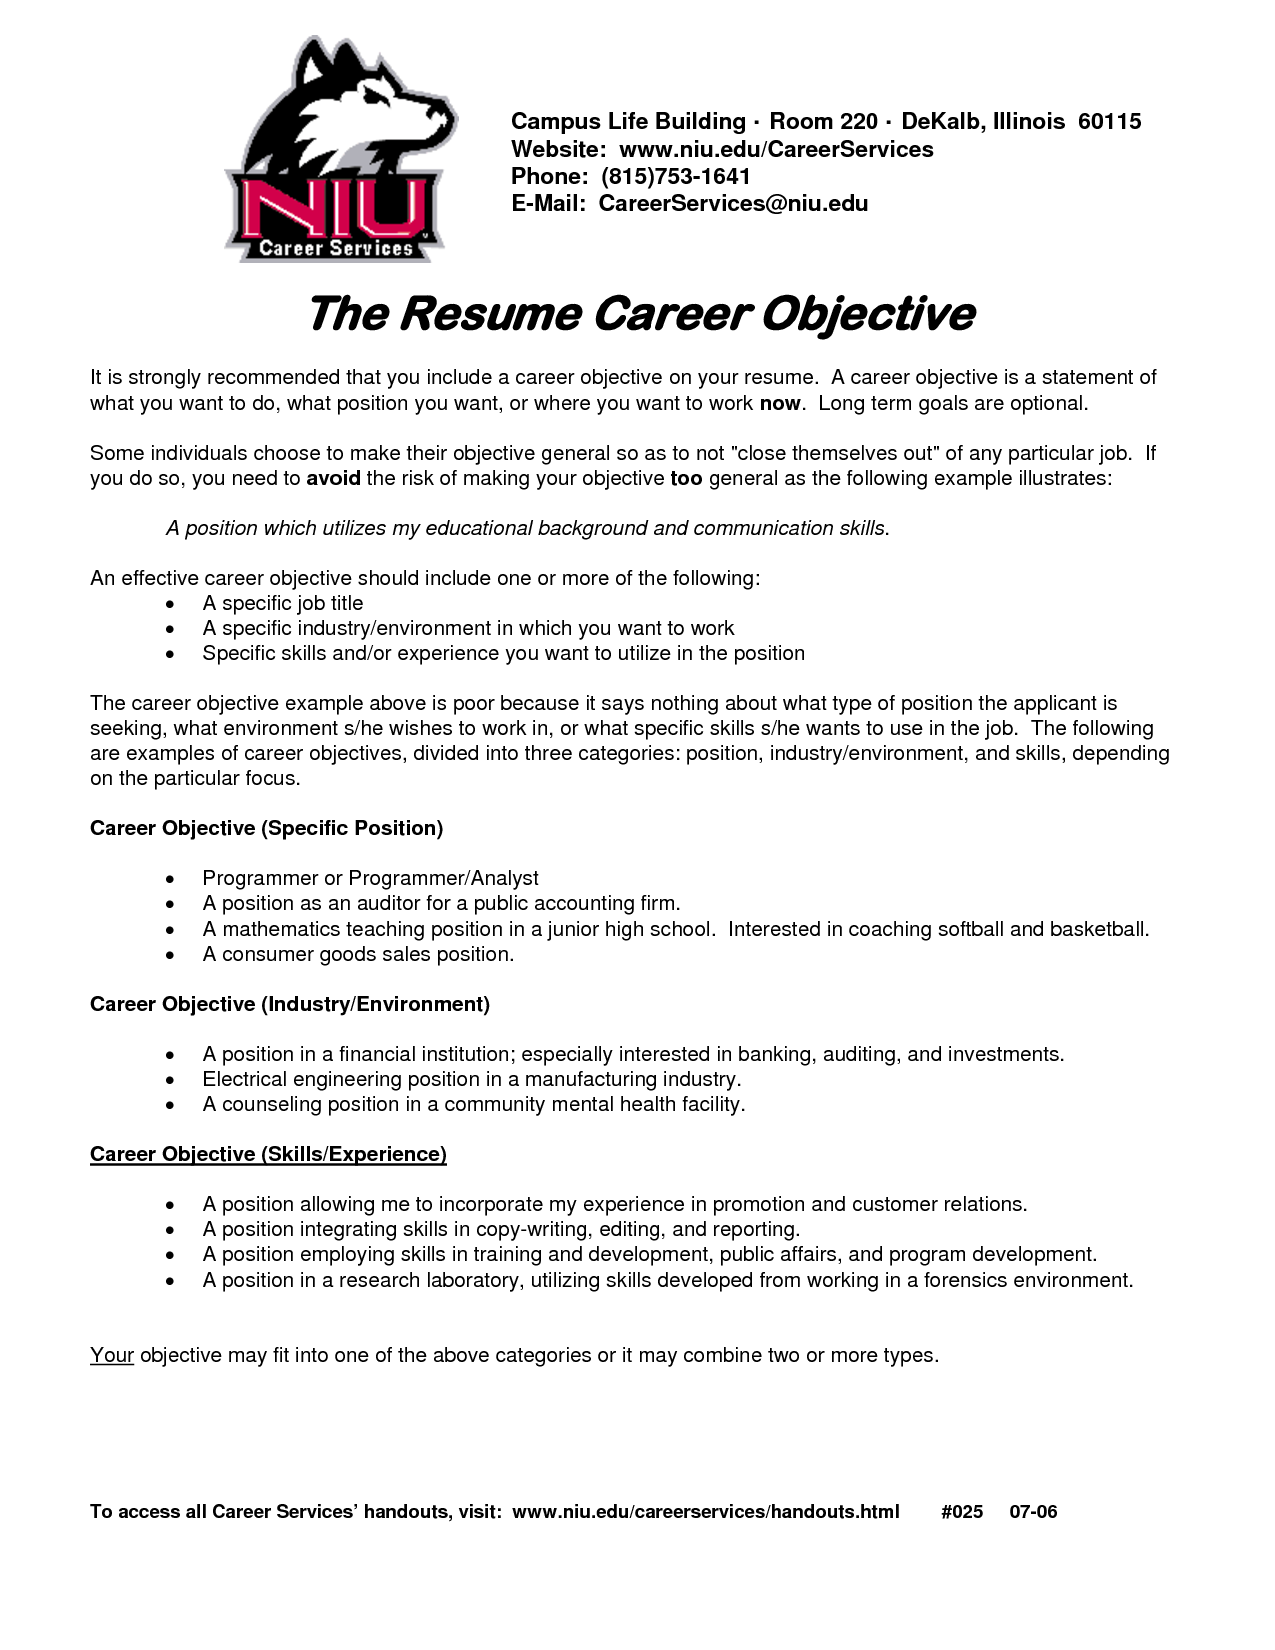 Good Work Objective For Resume Sample Job Objective Resume Writing Career  Objective Statement .  Resume Objective Examples For Students